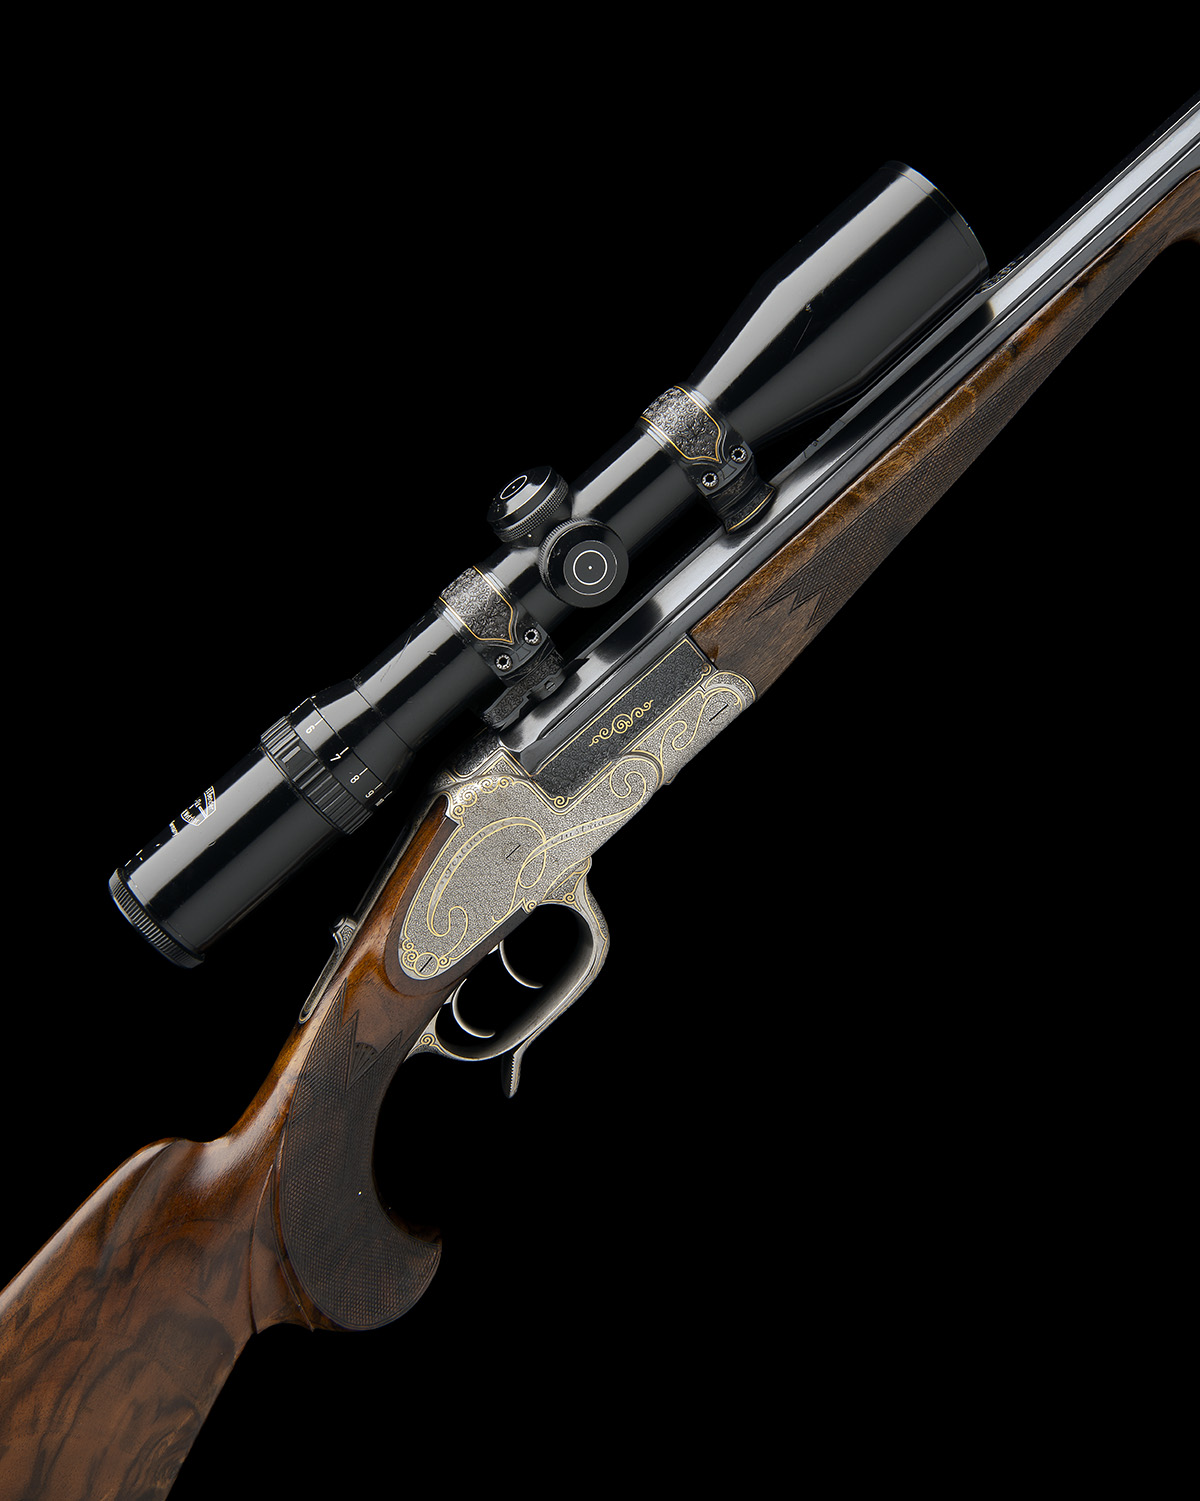 H. SCHEIRING A .300 WIN. MAG. JAEGER PATENT SINGLE-BARRELLED SIDEPLATED PUSH-FORWARD UNDERLEVER